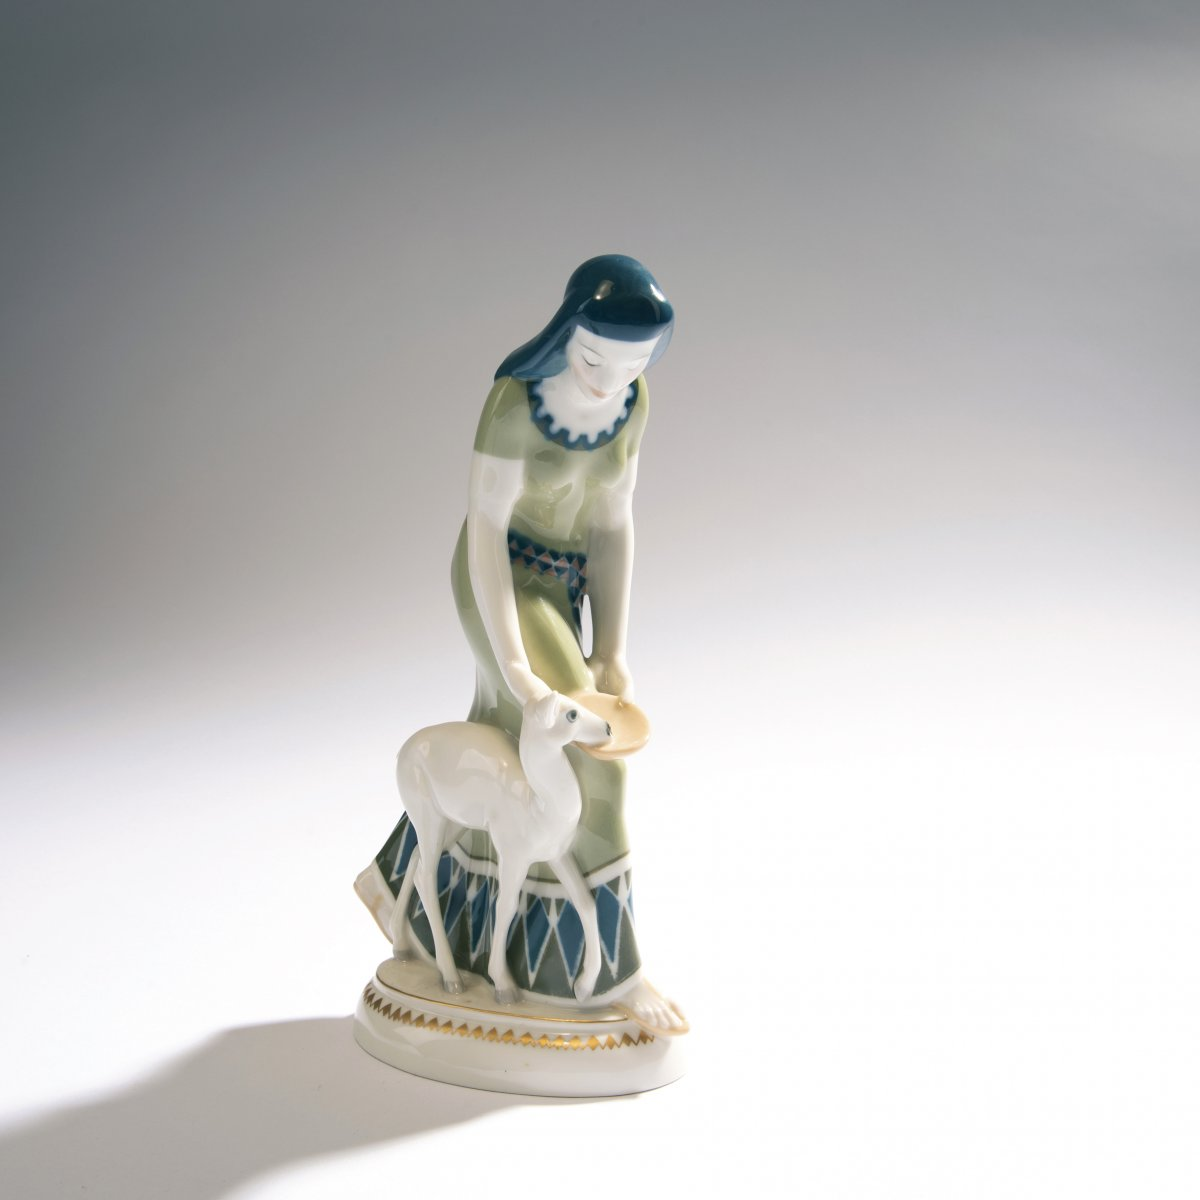 Lot 53 - Adolph Amberg, 'Egyptian woman', 1910'Egyptian woman', 1910H. 24.5 cm. Made by KPM Berlin, in